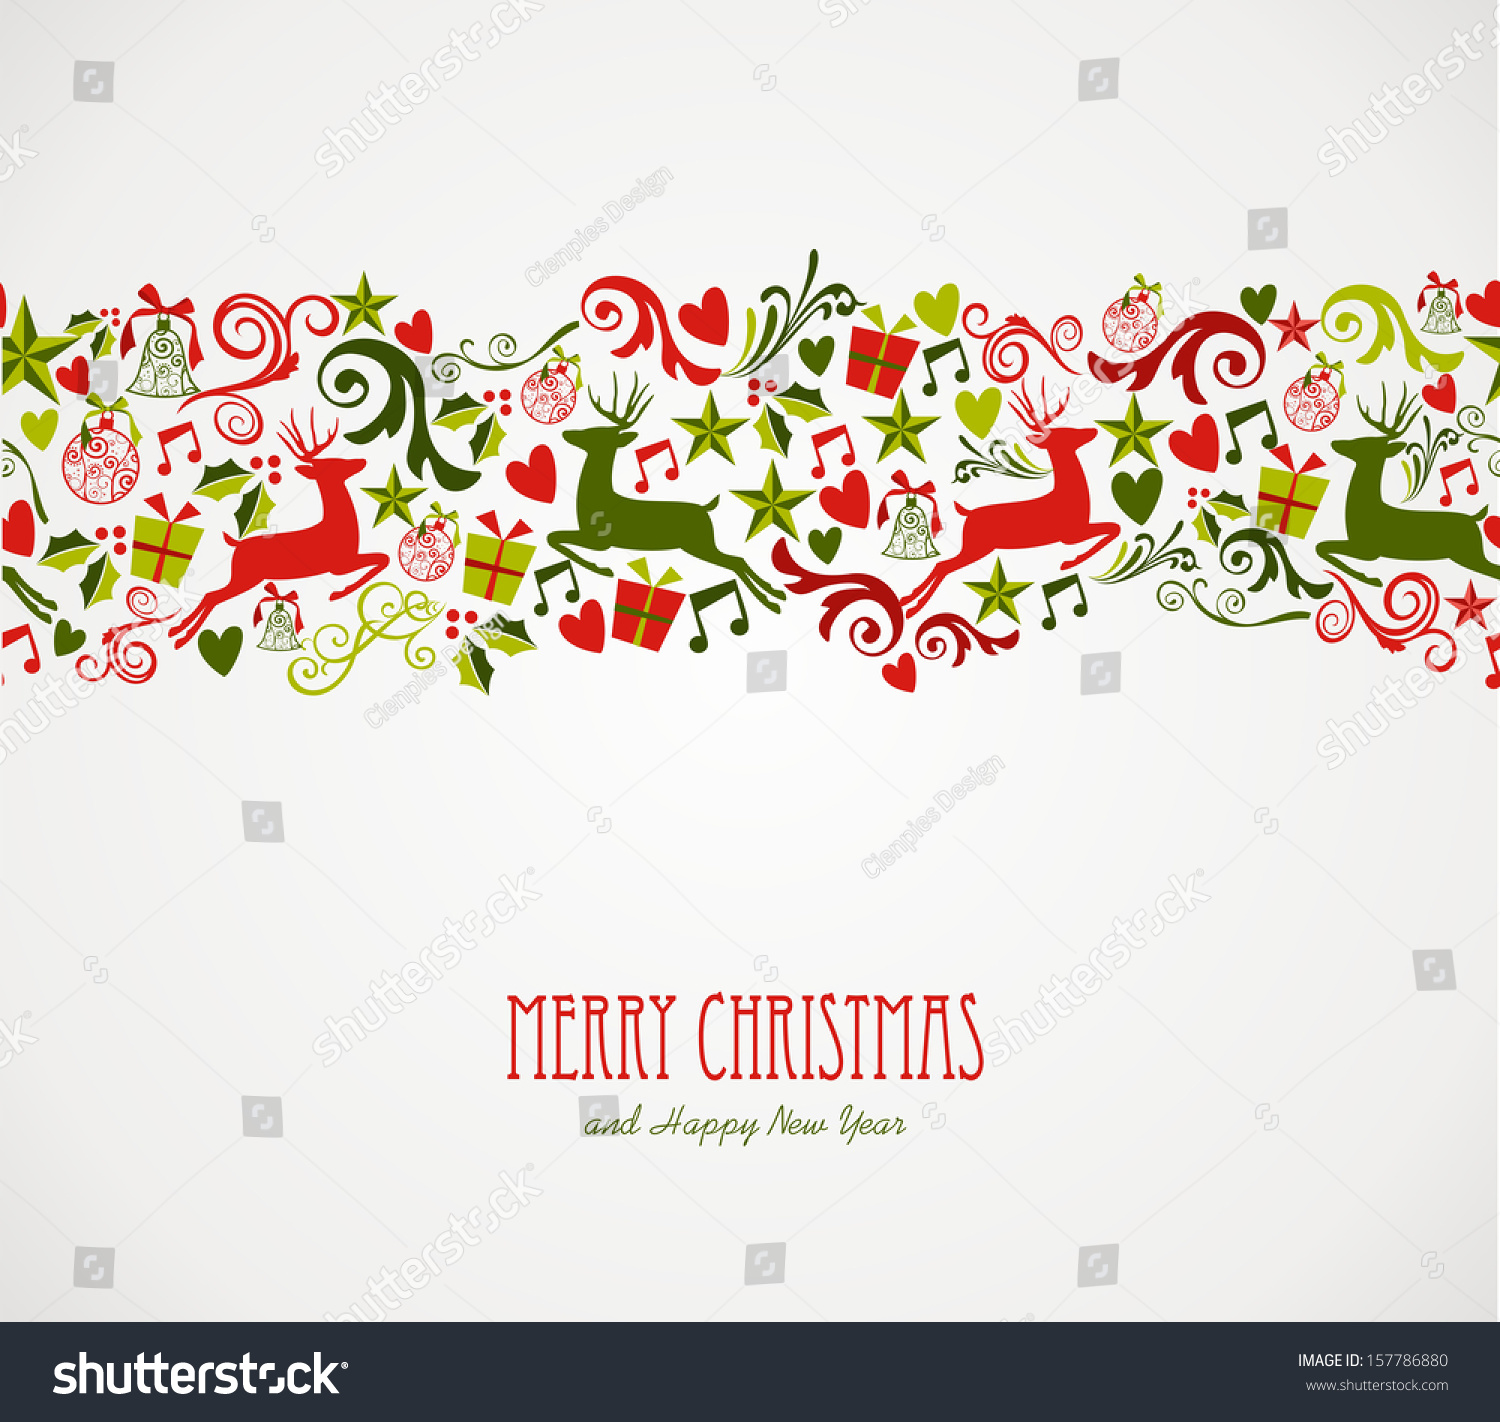 Merry Christmas Decorations Elements Seamless Pattern Stock Vector